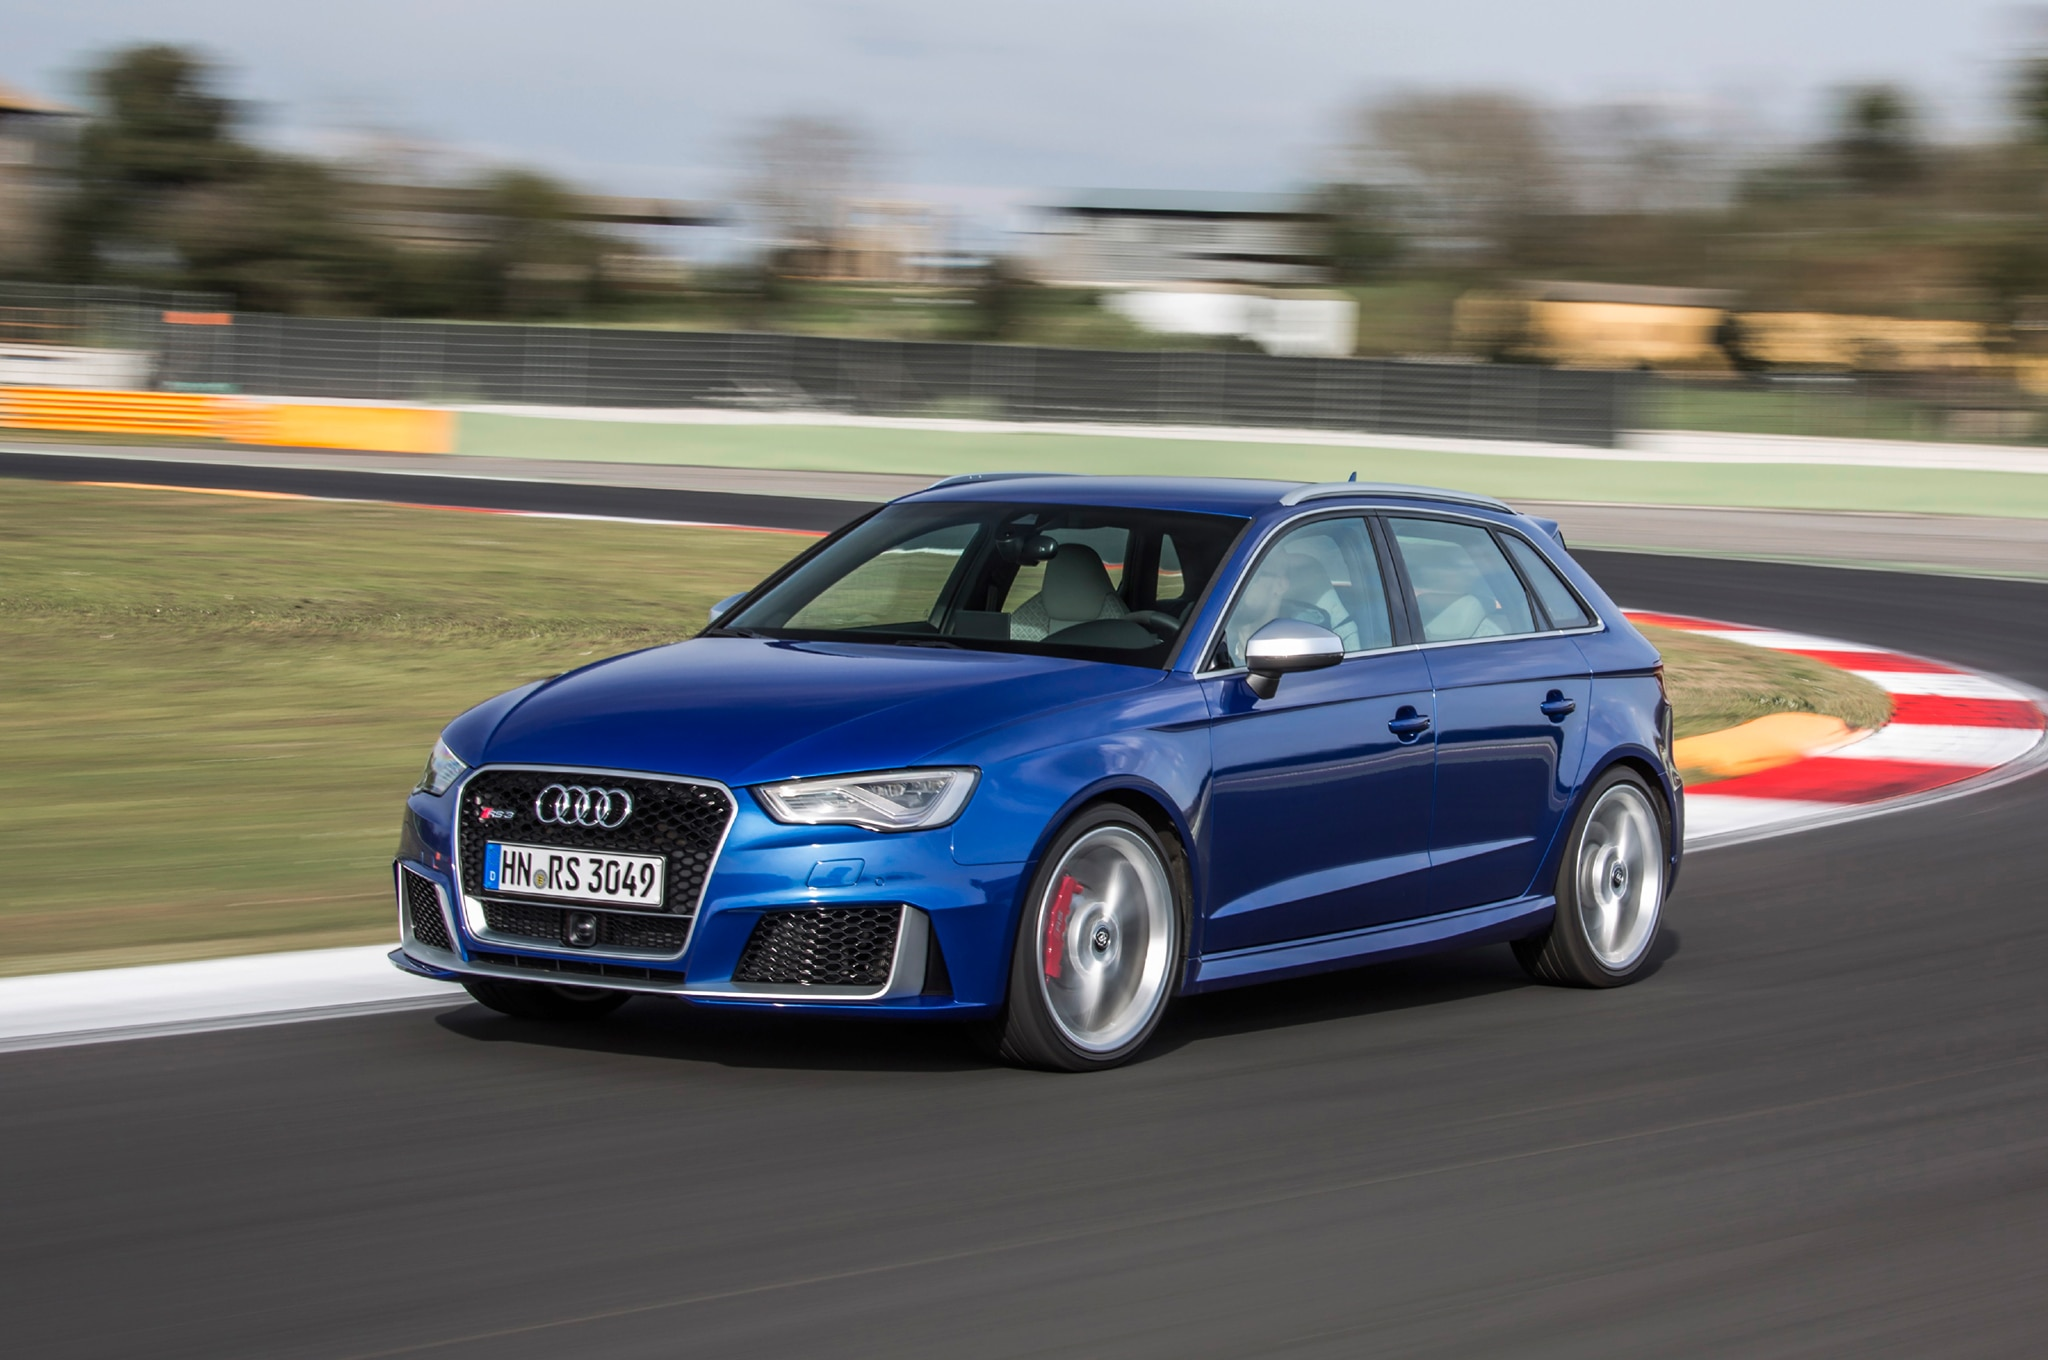 Lapping Le Mans In An Audi Rs 3 Sportback